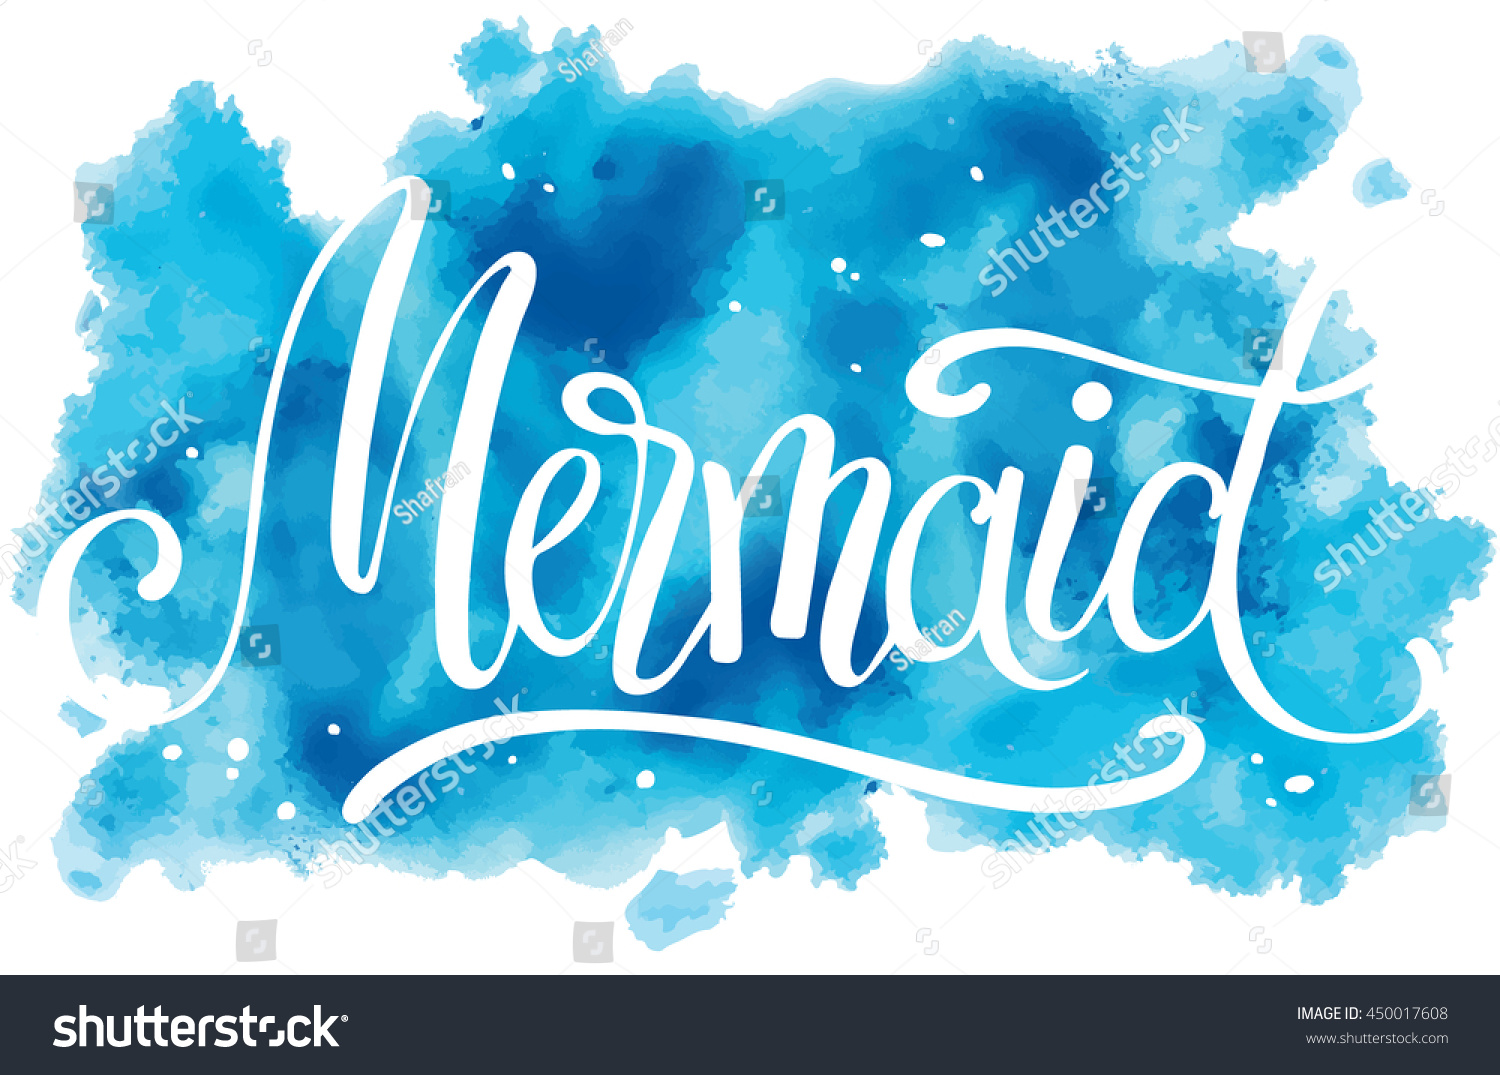 Hand painted mermaid watercolor vector silhouette stock vector - Mermaid Hand Written Lettering On Watercolor Background Vector Illustration For T Shirt Design